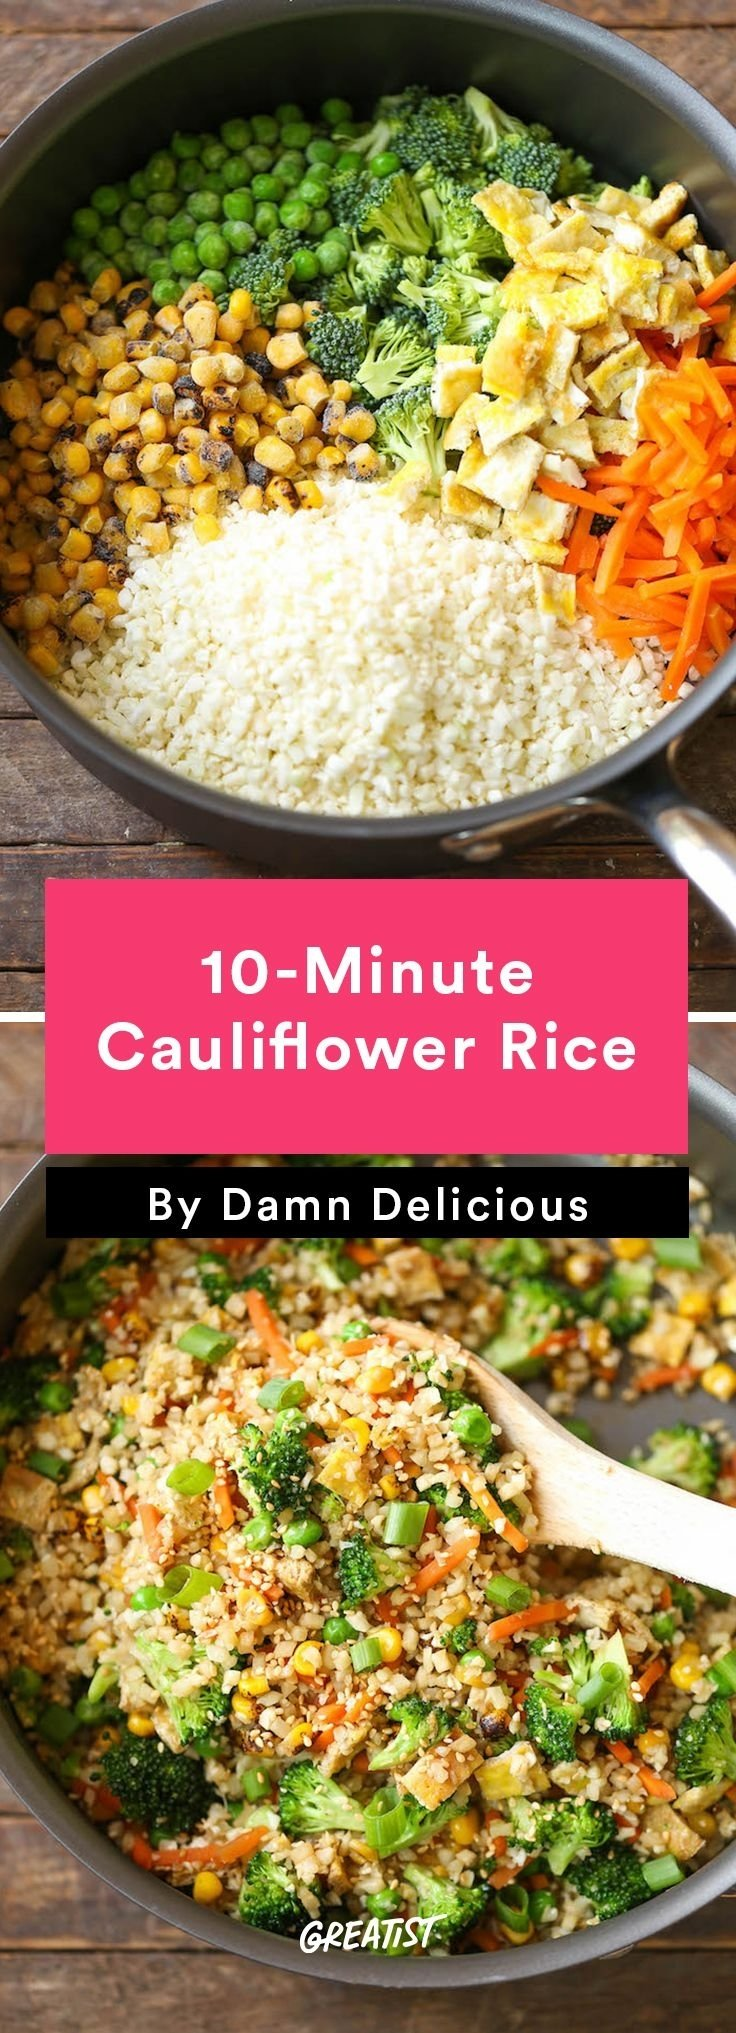 10 Pretty Quick Dinner Ideas For 1 500 best quick healthy meals images on pinterest cooking food 2021